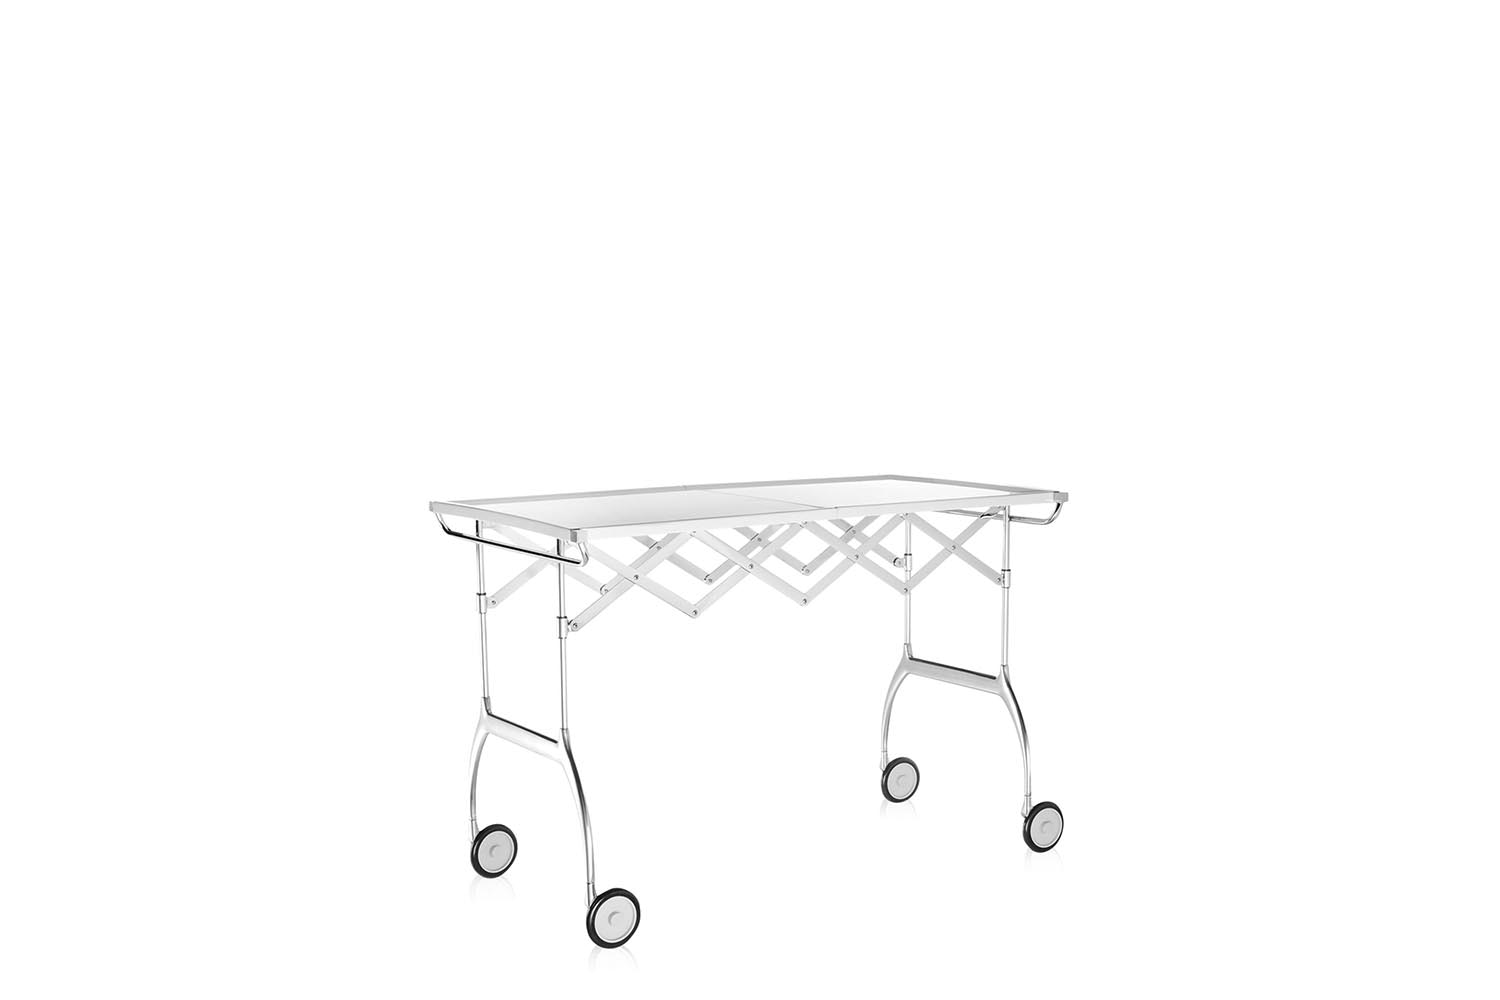 Battista Trolley by Antonio Citterio with Oliver Low for Kartell